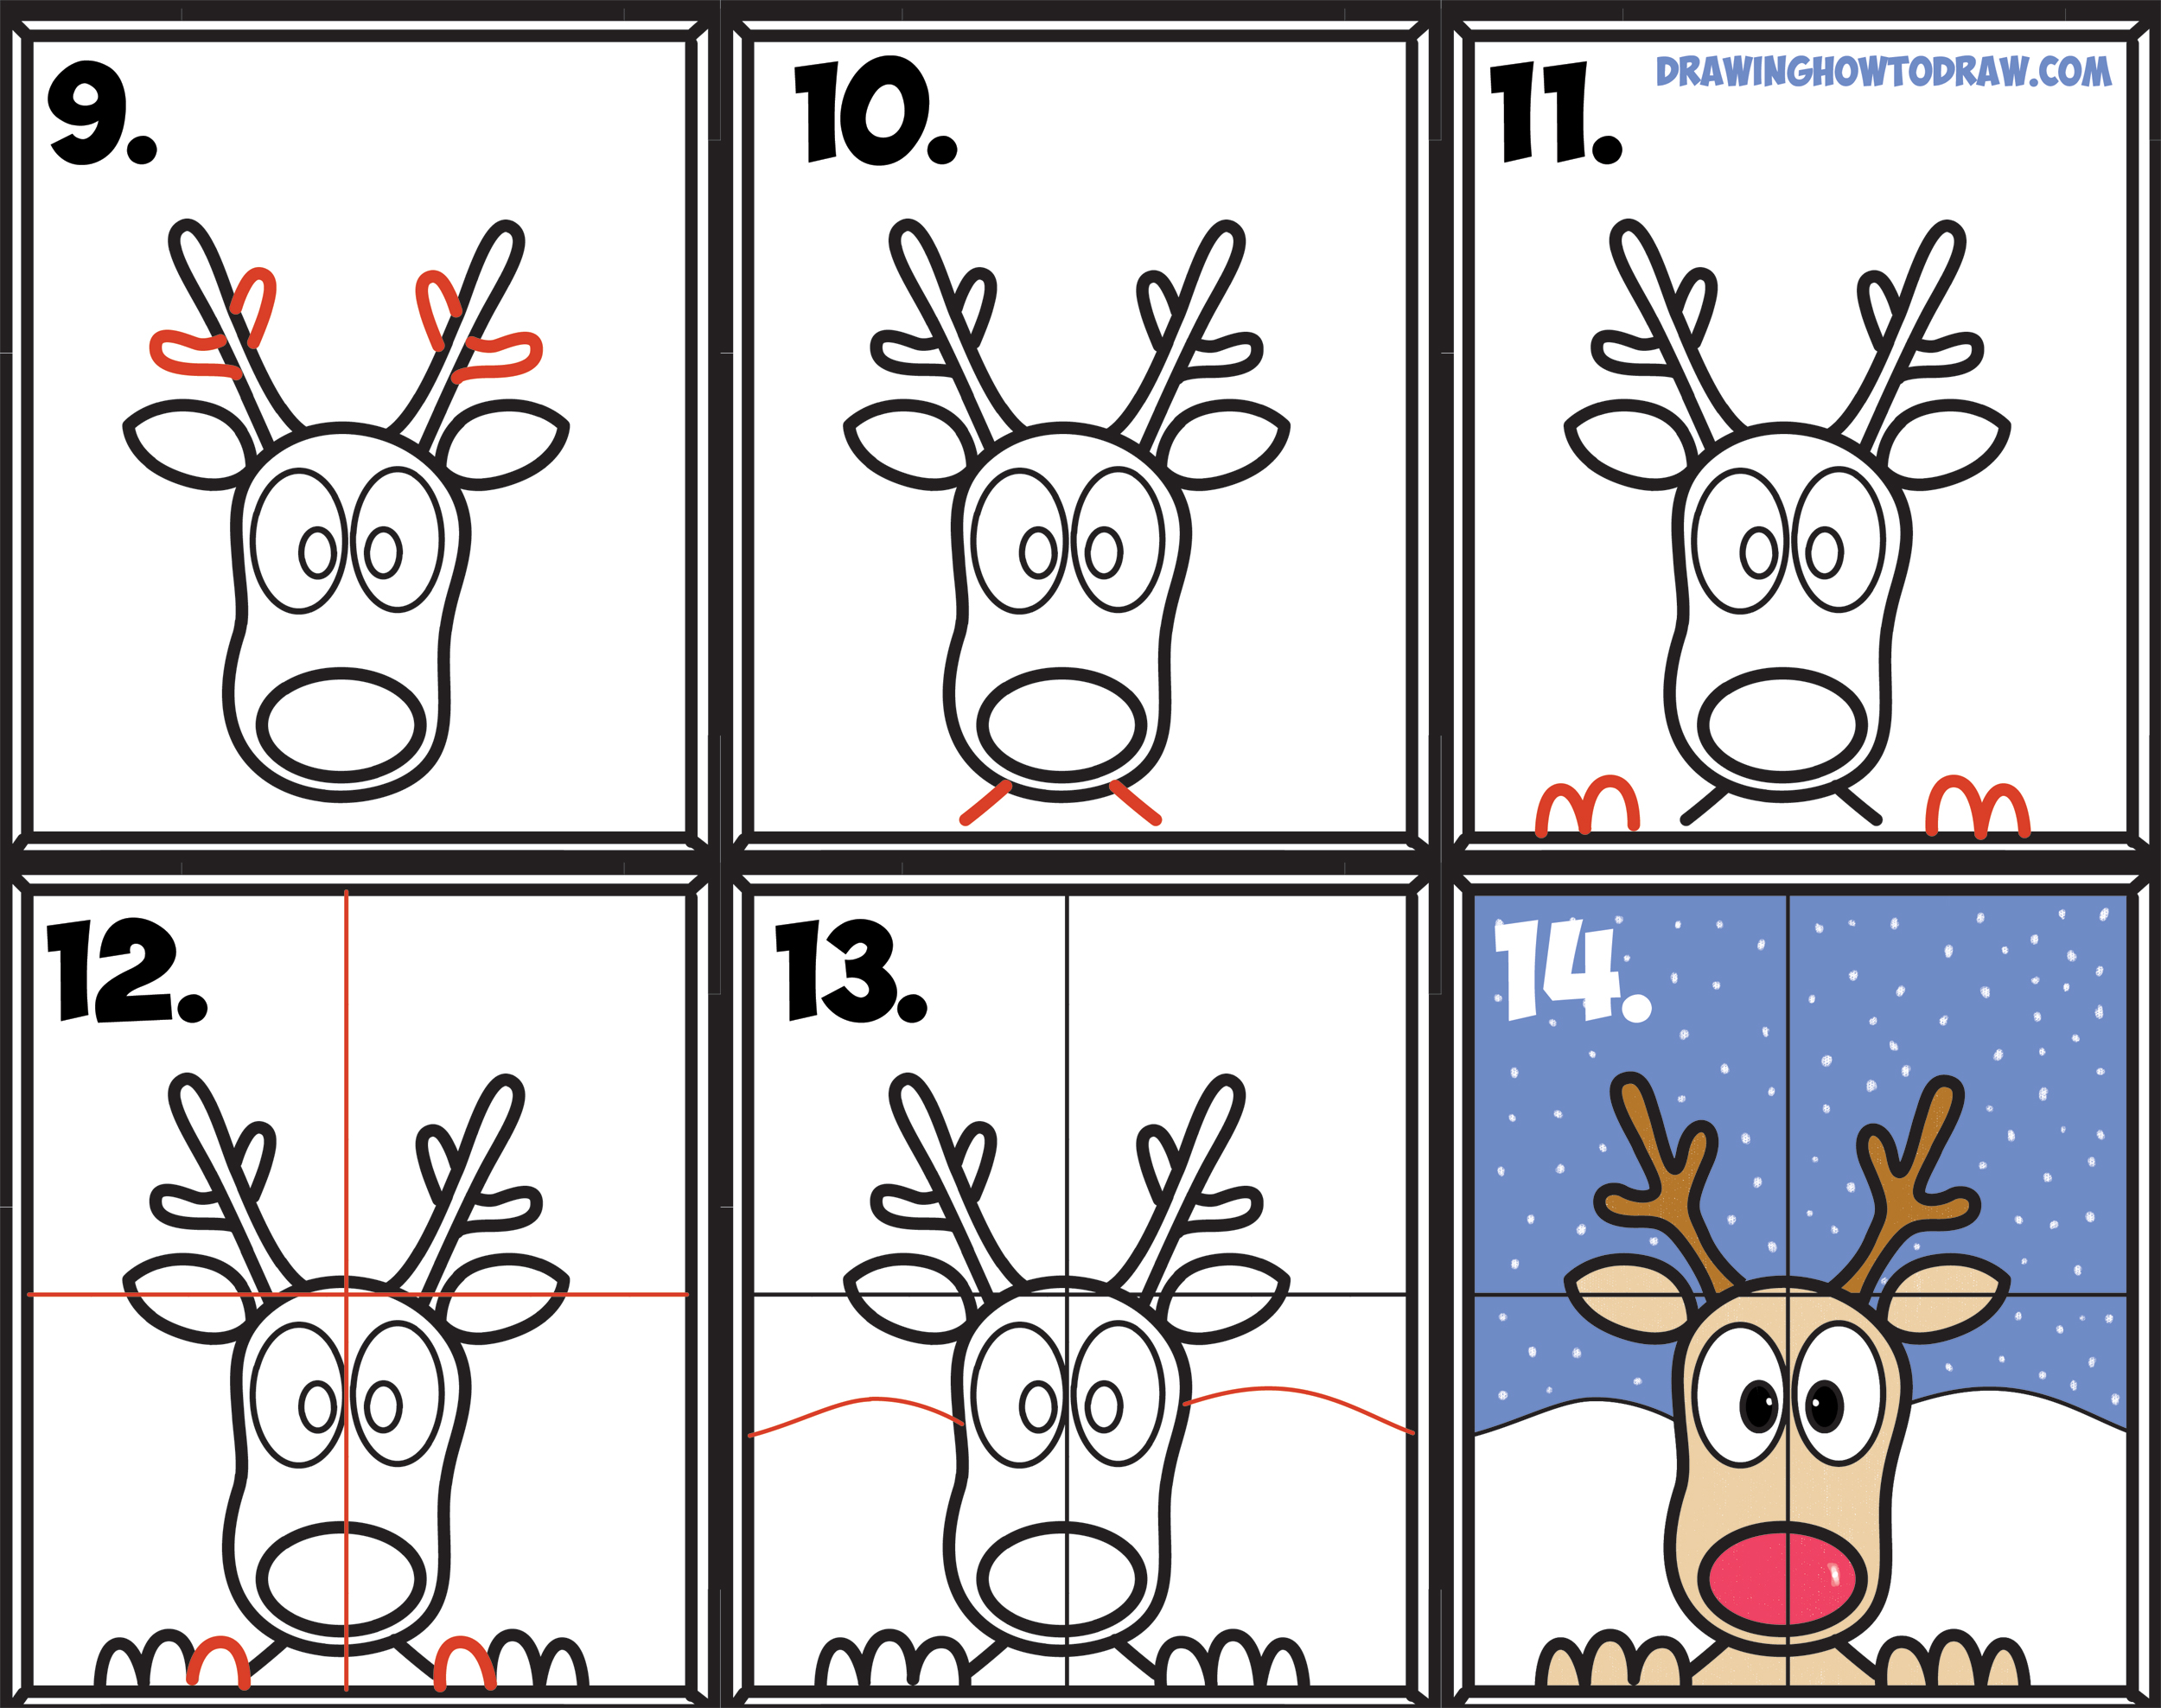 How to Draw Rudolph the Red Nosed Reindeer Looking in Window Easy.